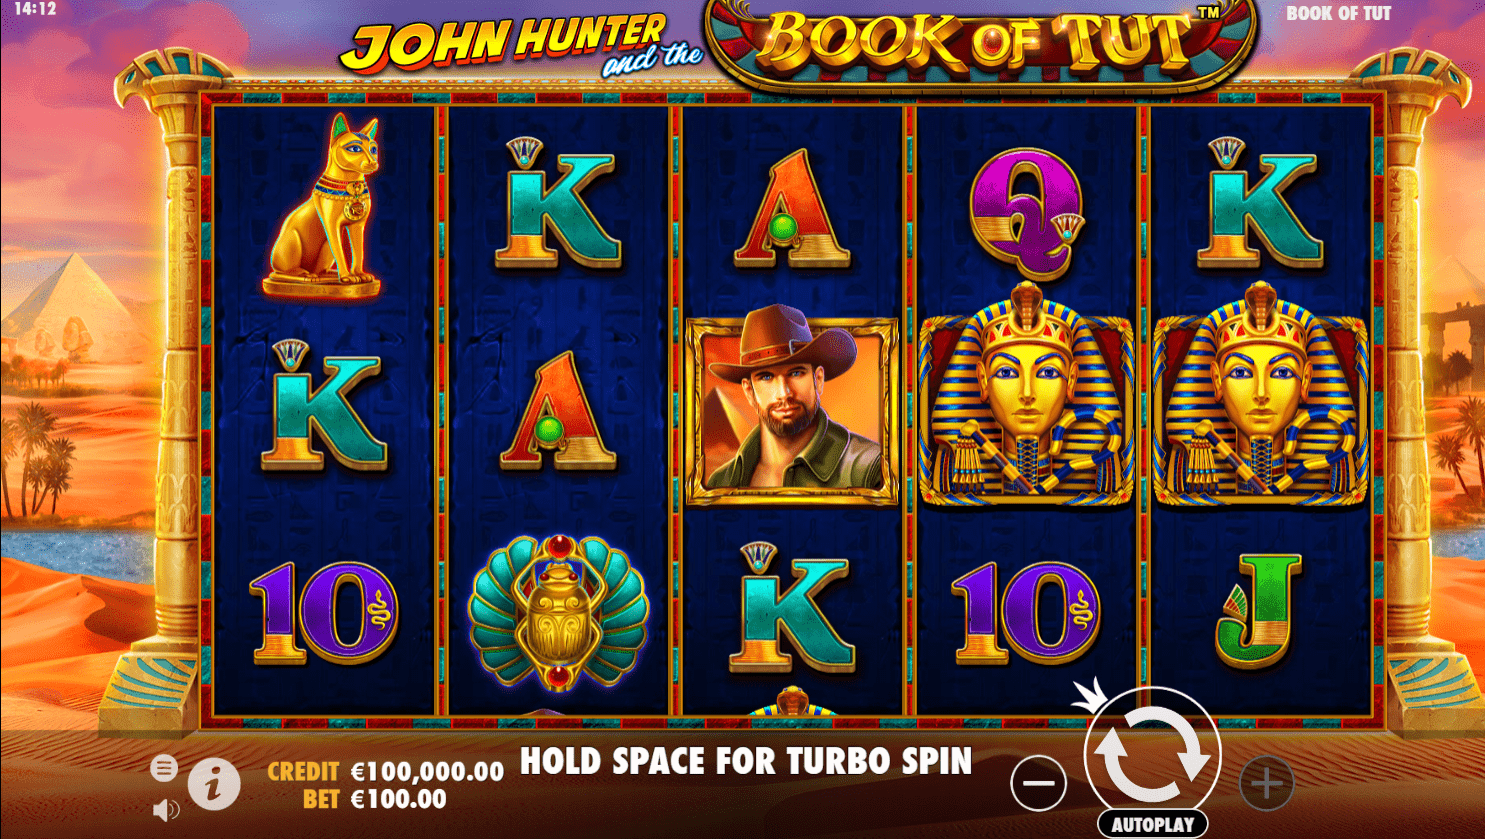 John Hunter & the Book of Tut video slot